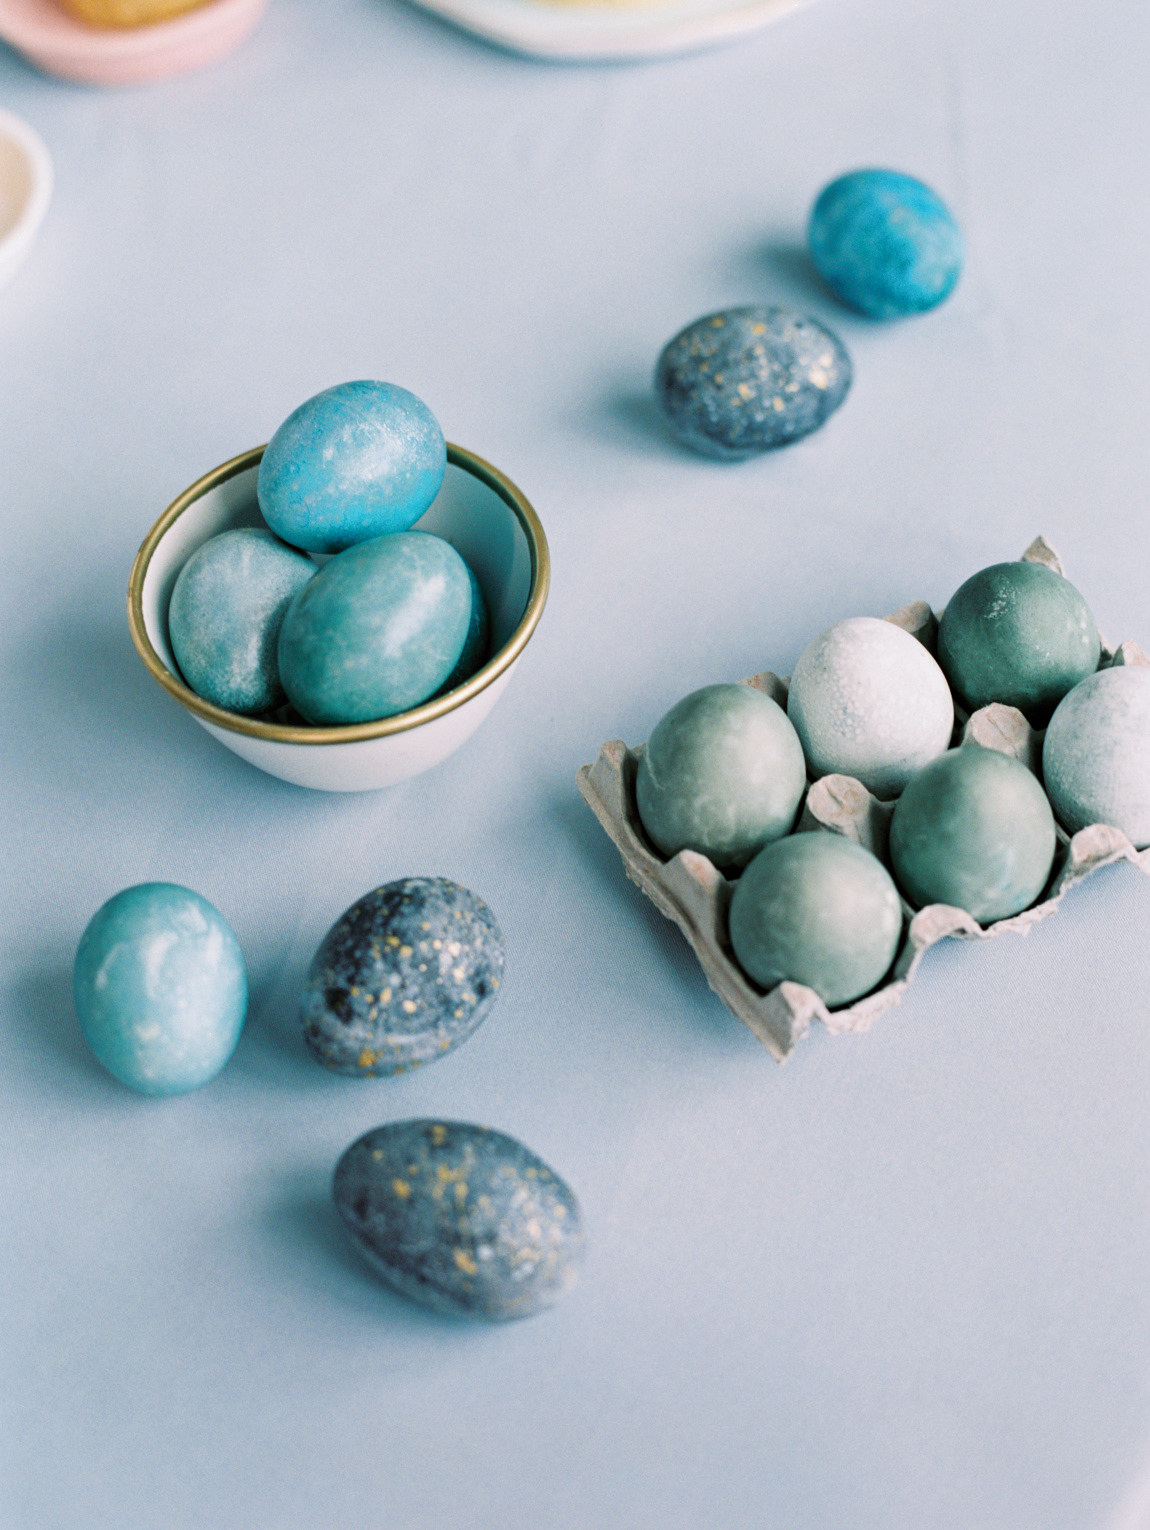 grey and blue easter eggs